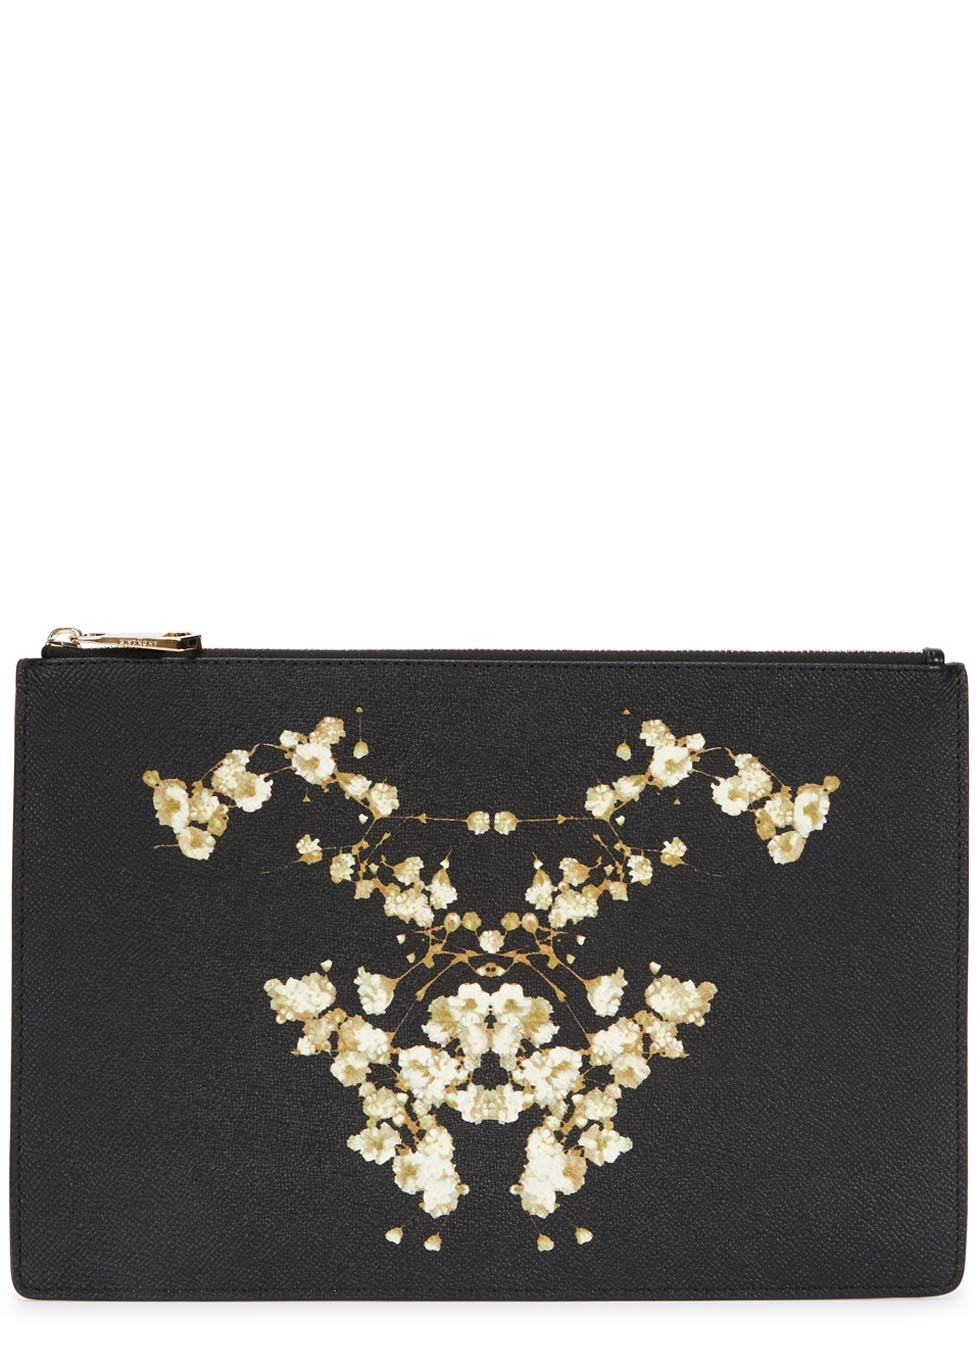 Givenchy leather pouch – was £395, now £197